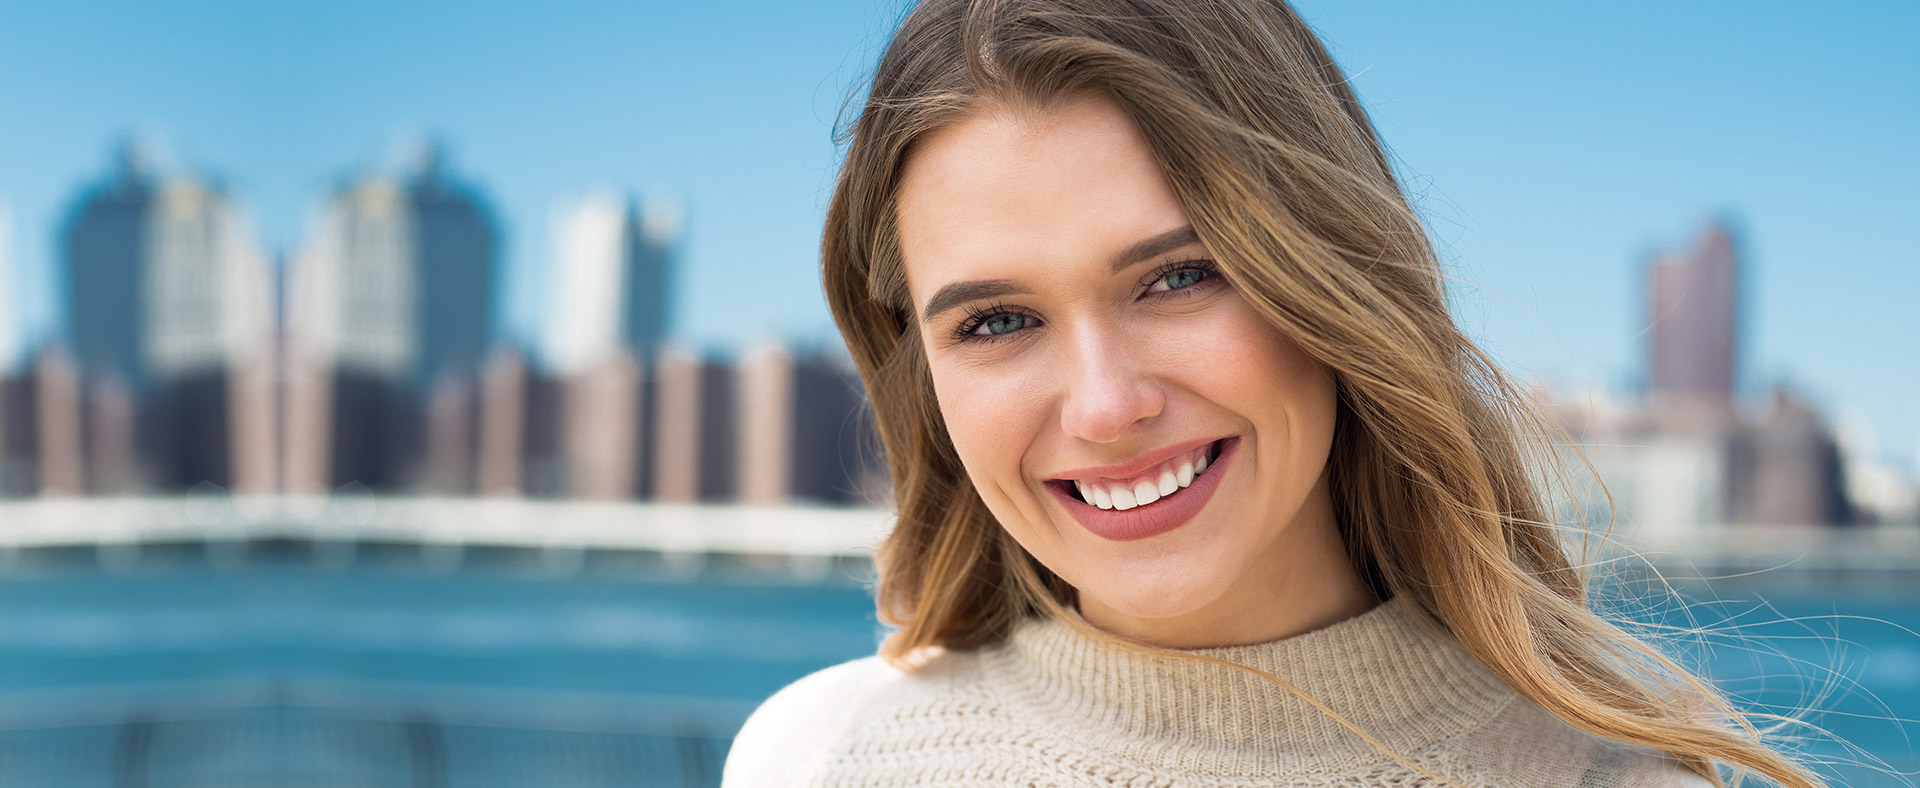 Dentist Melbourne offers the best in class holistic dental treatment to patients